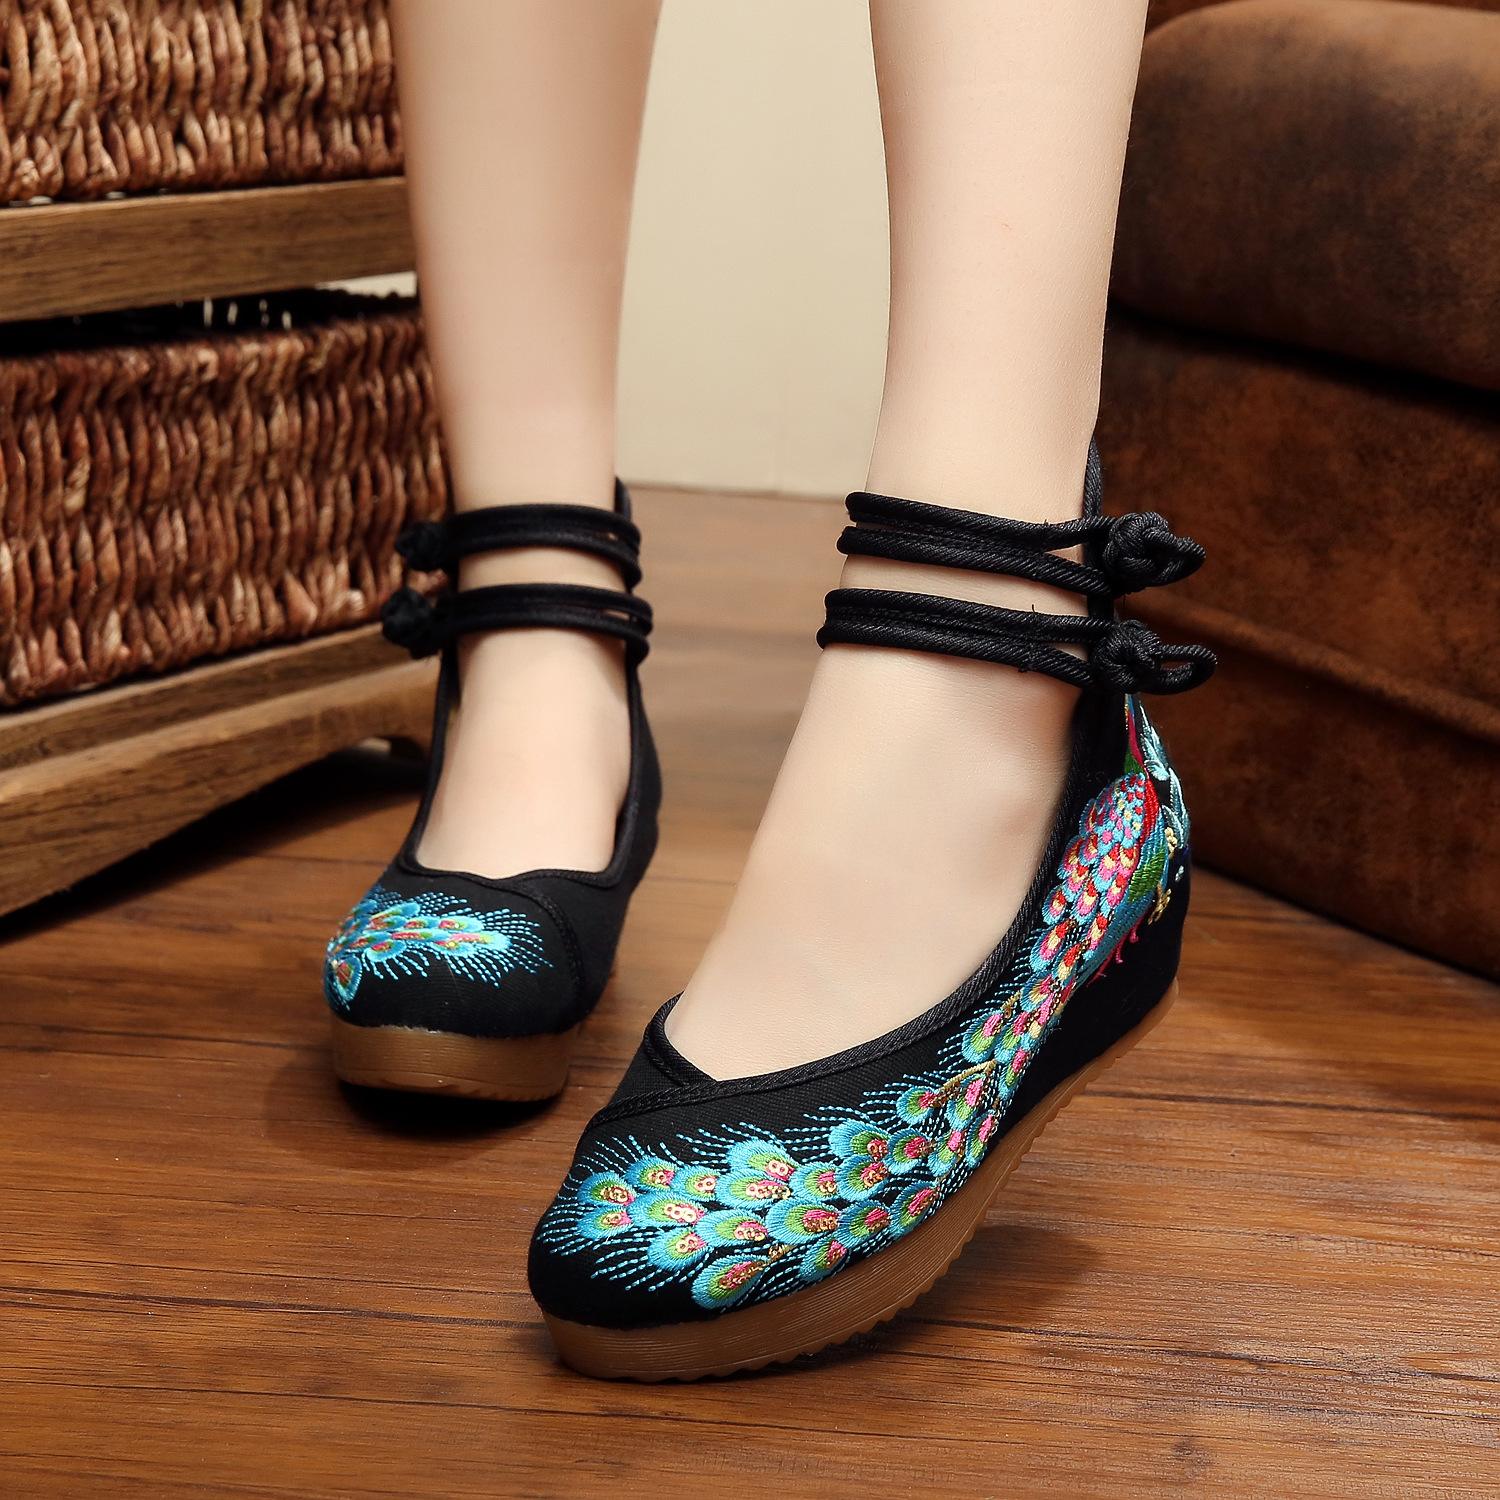 SMYXHX-0013 Big Size 41 Ballerinas Dancing Shoes Women Peking Peacock Embroidery Soft Sole Casual Shoes Cloth Walking Flats(China (Mainland))